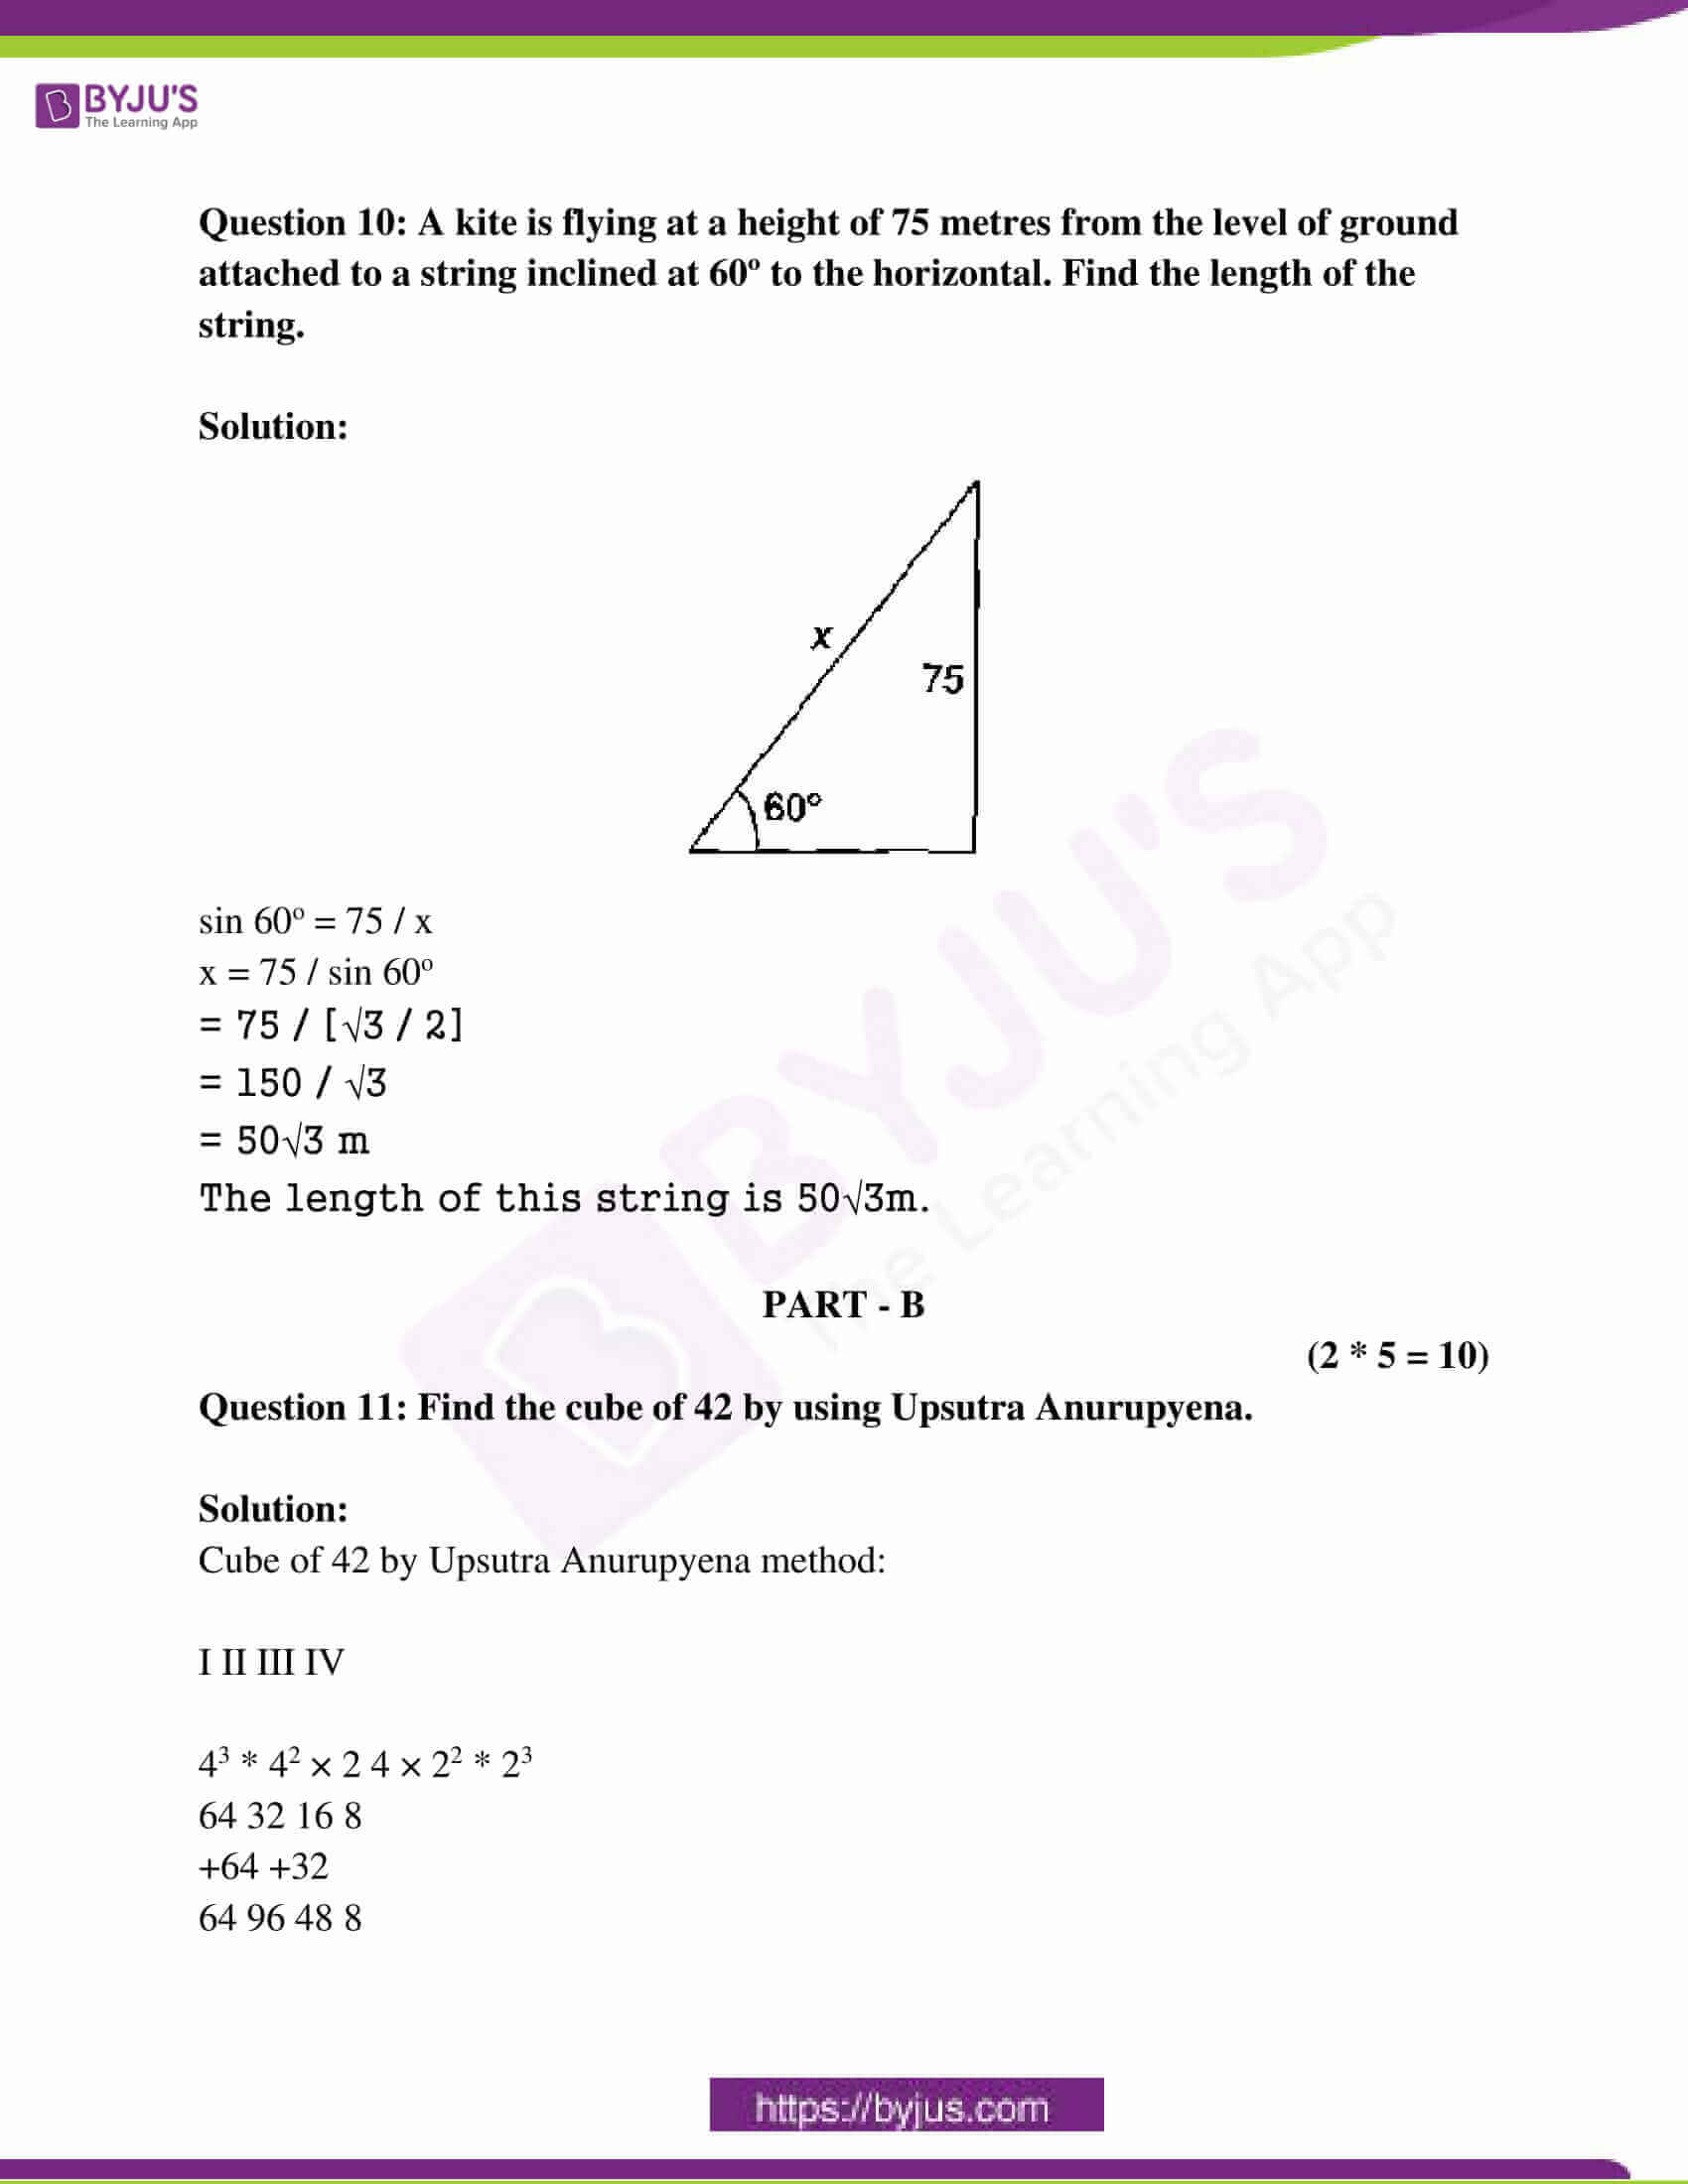 rajasthan board class 10 examination question paper sol march 2019 04